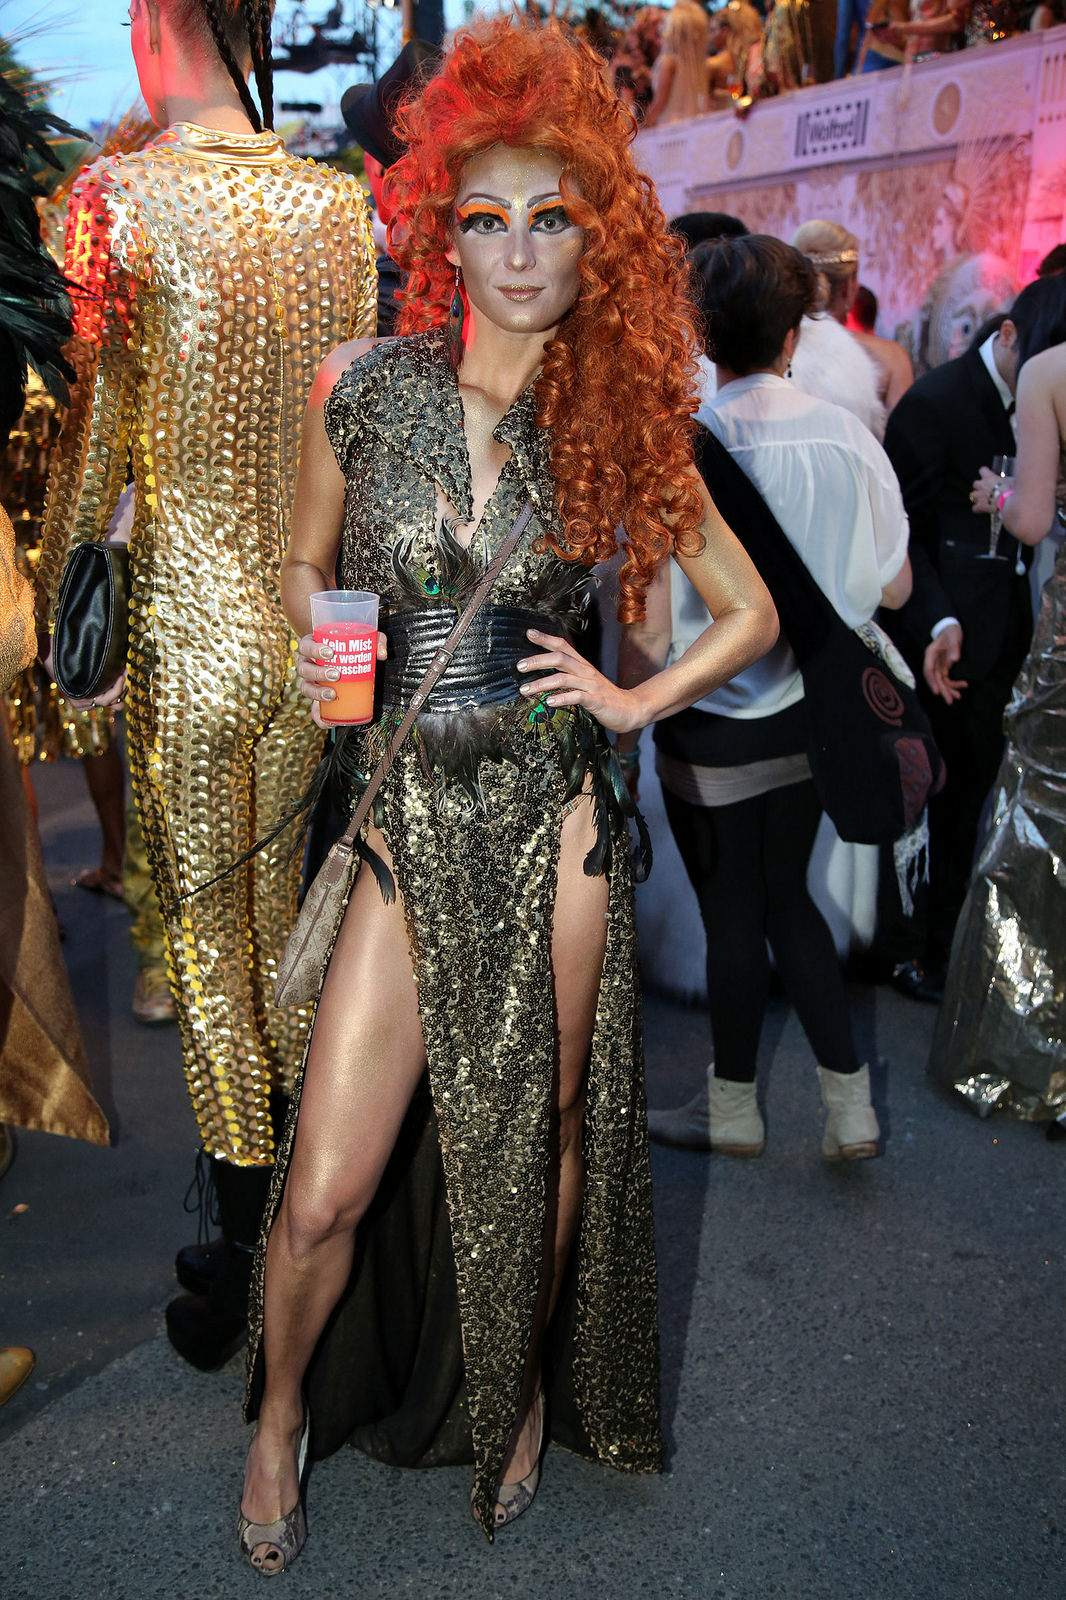 life ball7 Life Ball 2015 in Wien